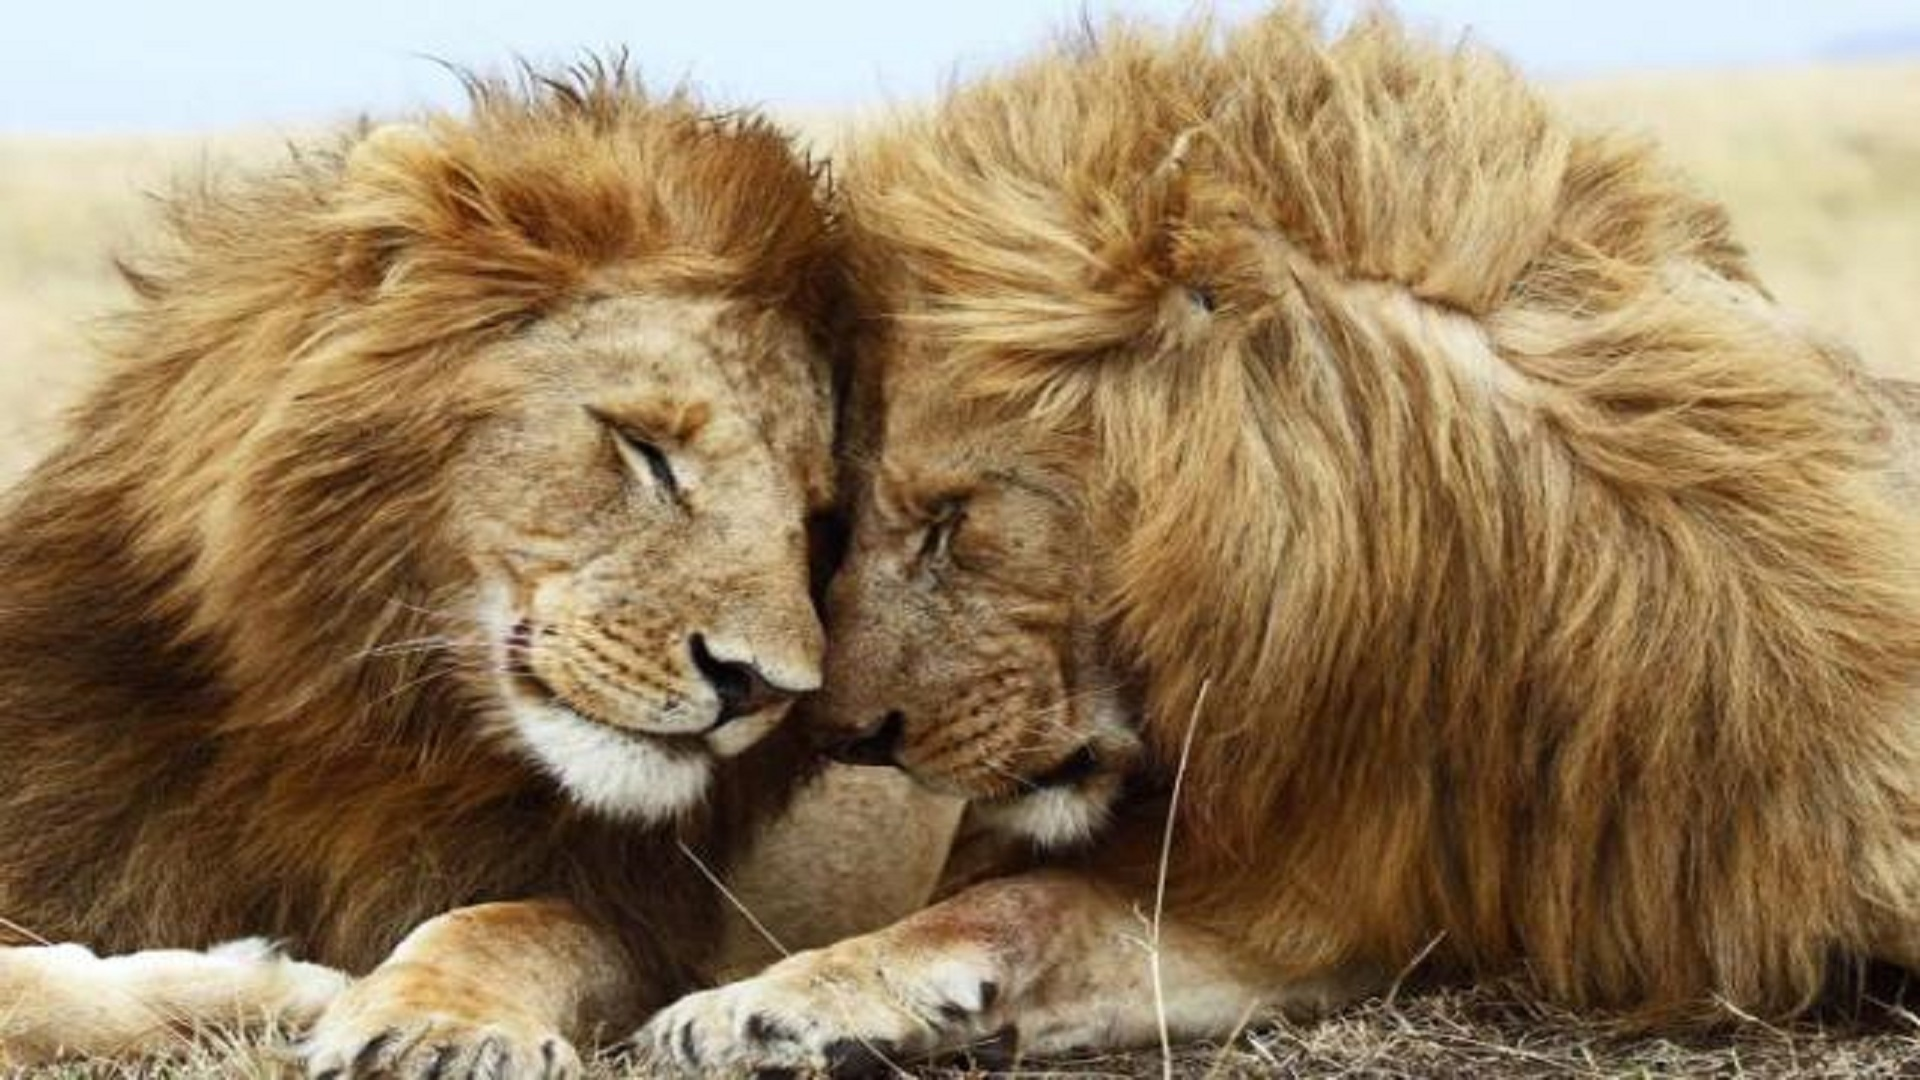 Abstract Animal Wallpaper African Lions Love Hd Wallpapers Free Hd Wallpaper